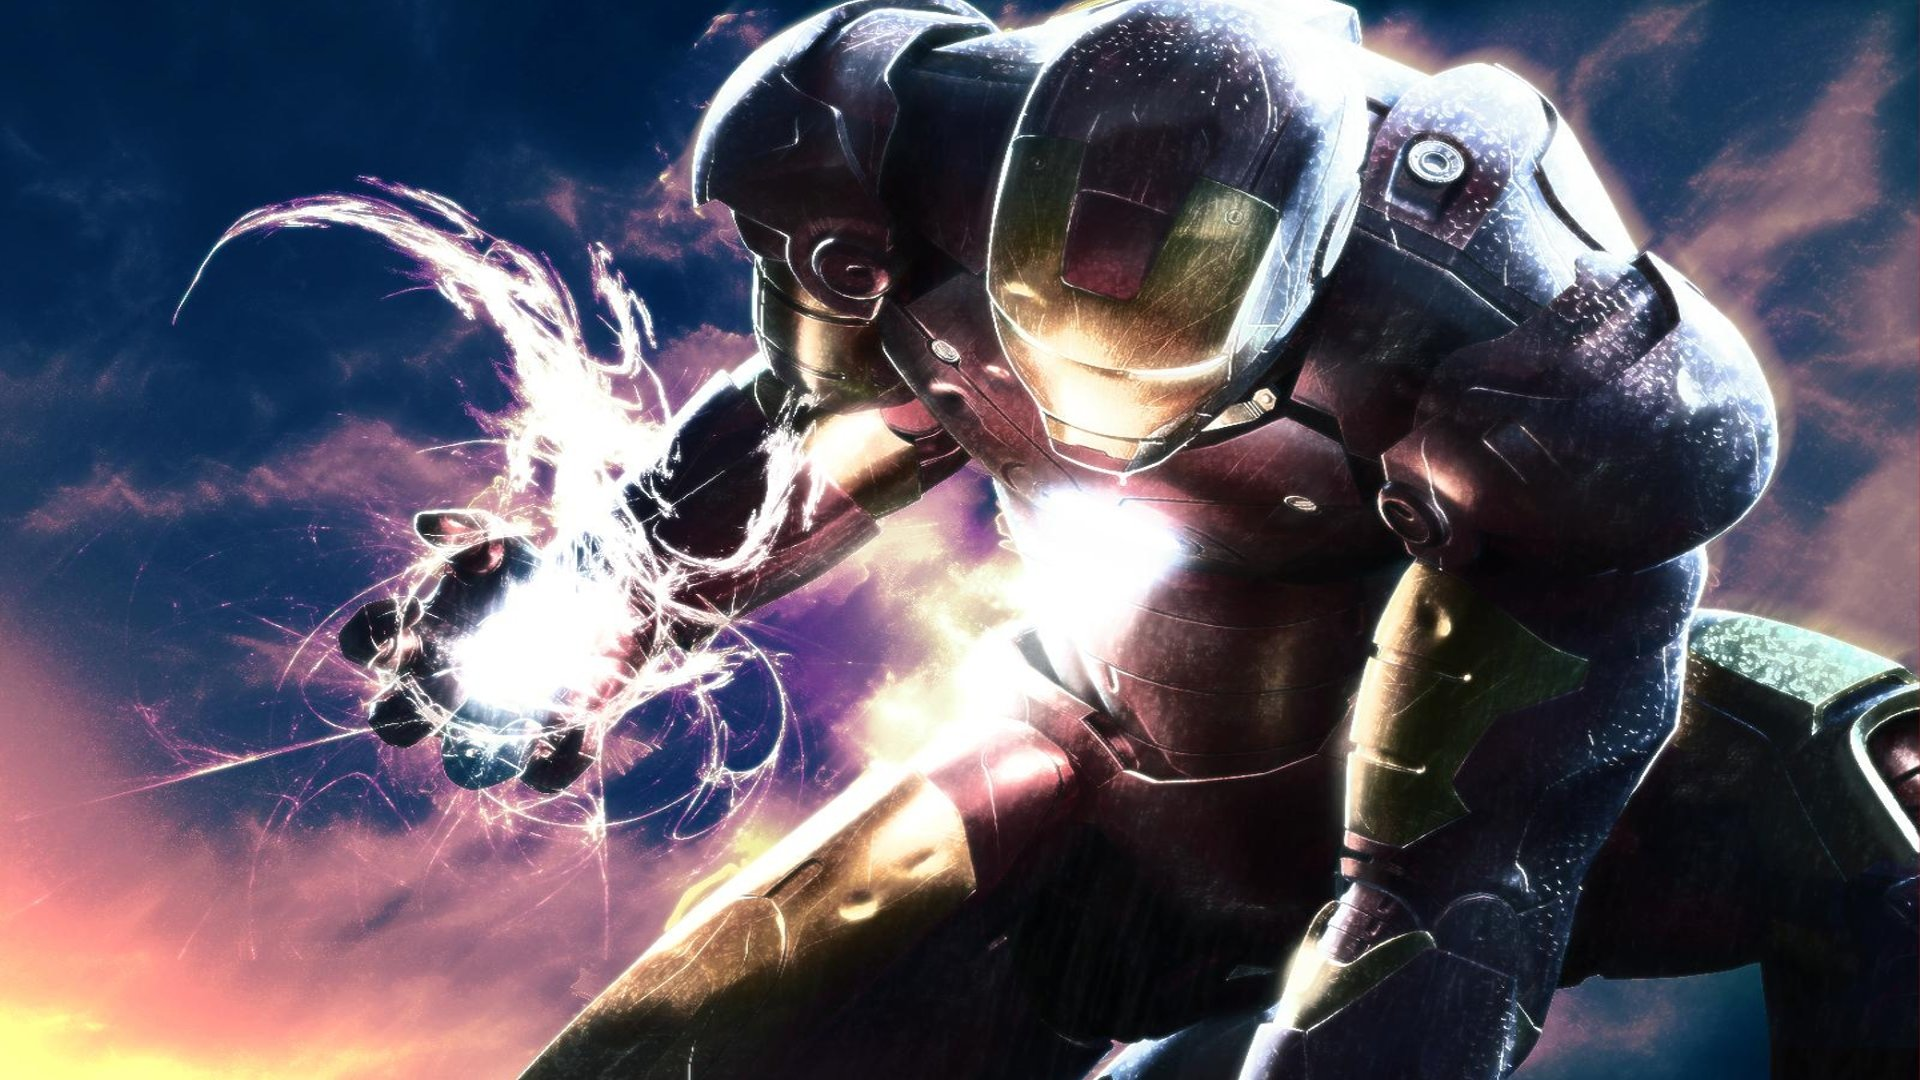 Download full hd Iron Man PC background ID:23 for free